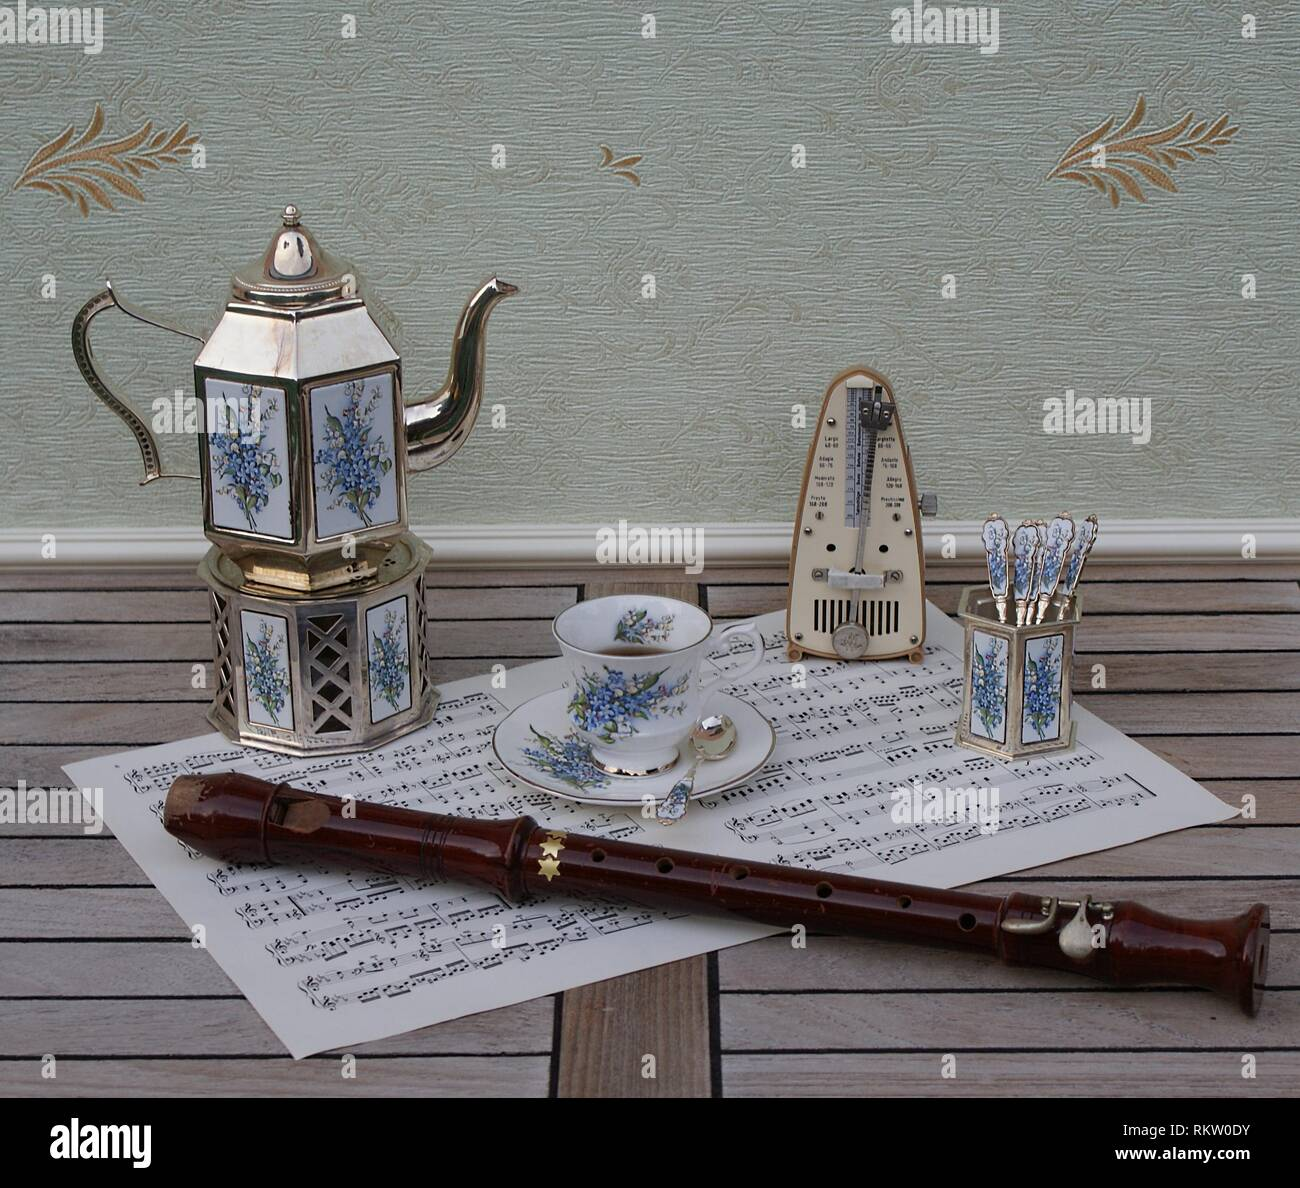 English teacup, saucer, silver-plated teapot on a silver stove, spoon vase and teaspoon and metronome for music and a block flut on a sheet of music - Stock Image